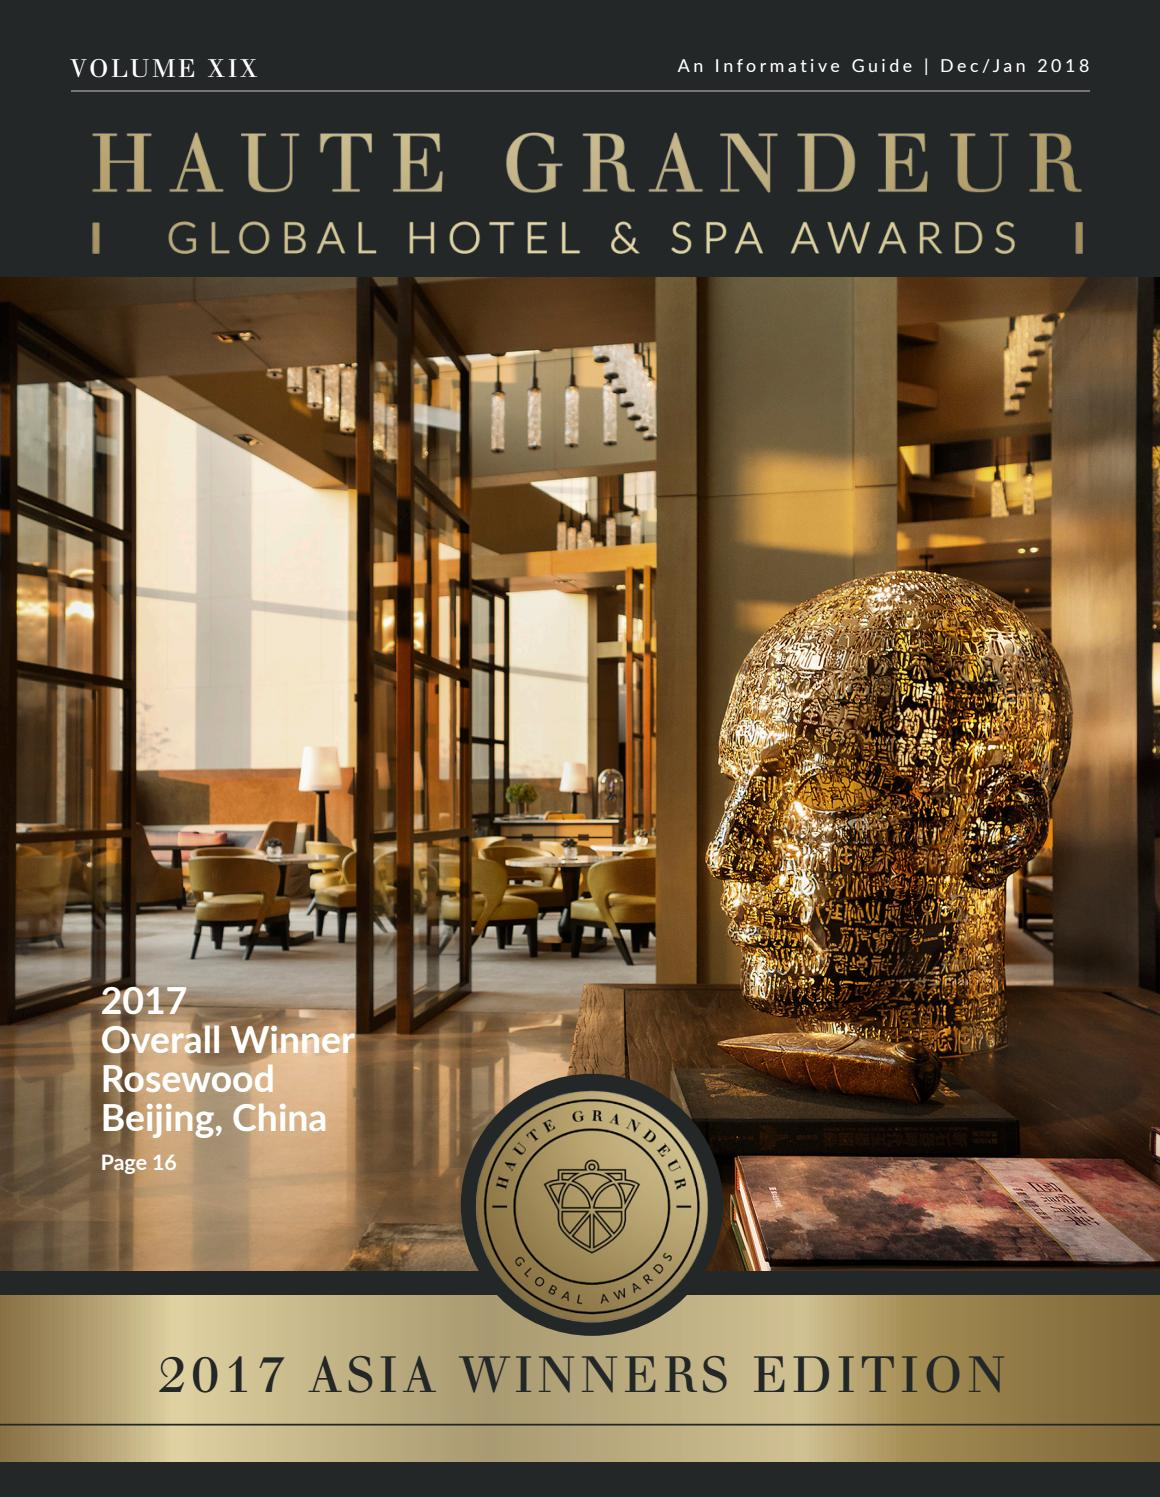 Haute Grandeur The Best In Hotels And Spas Dec Jan 2018 By Haute Grandeur Global Hotel Awards Issuu